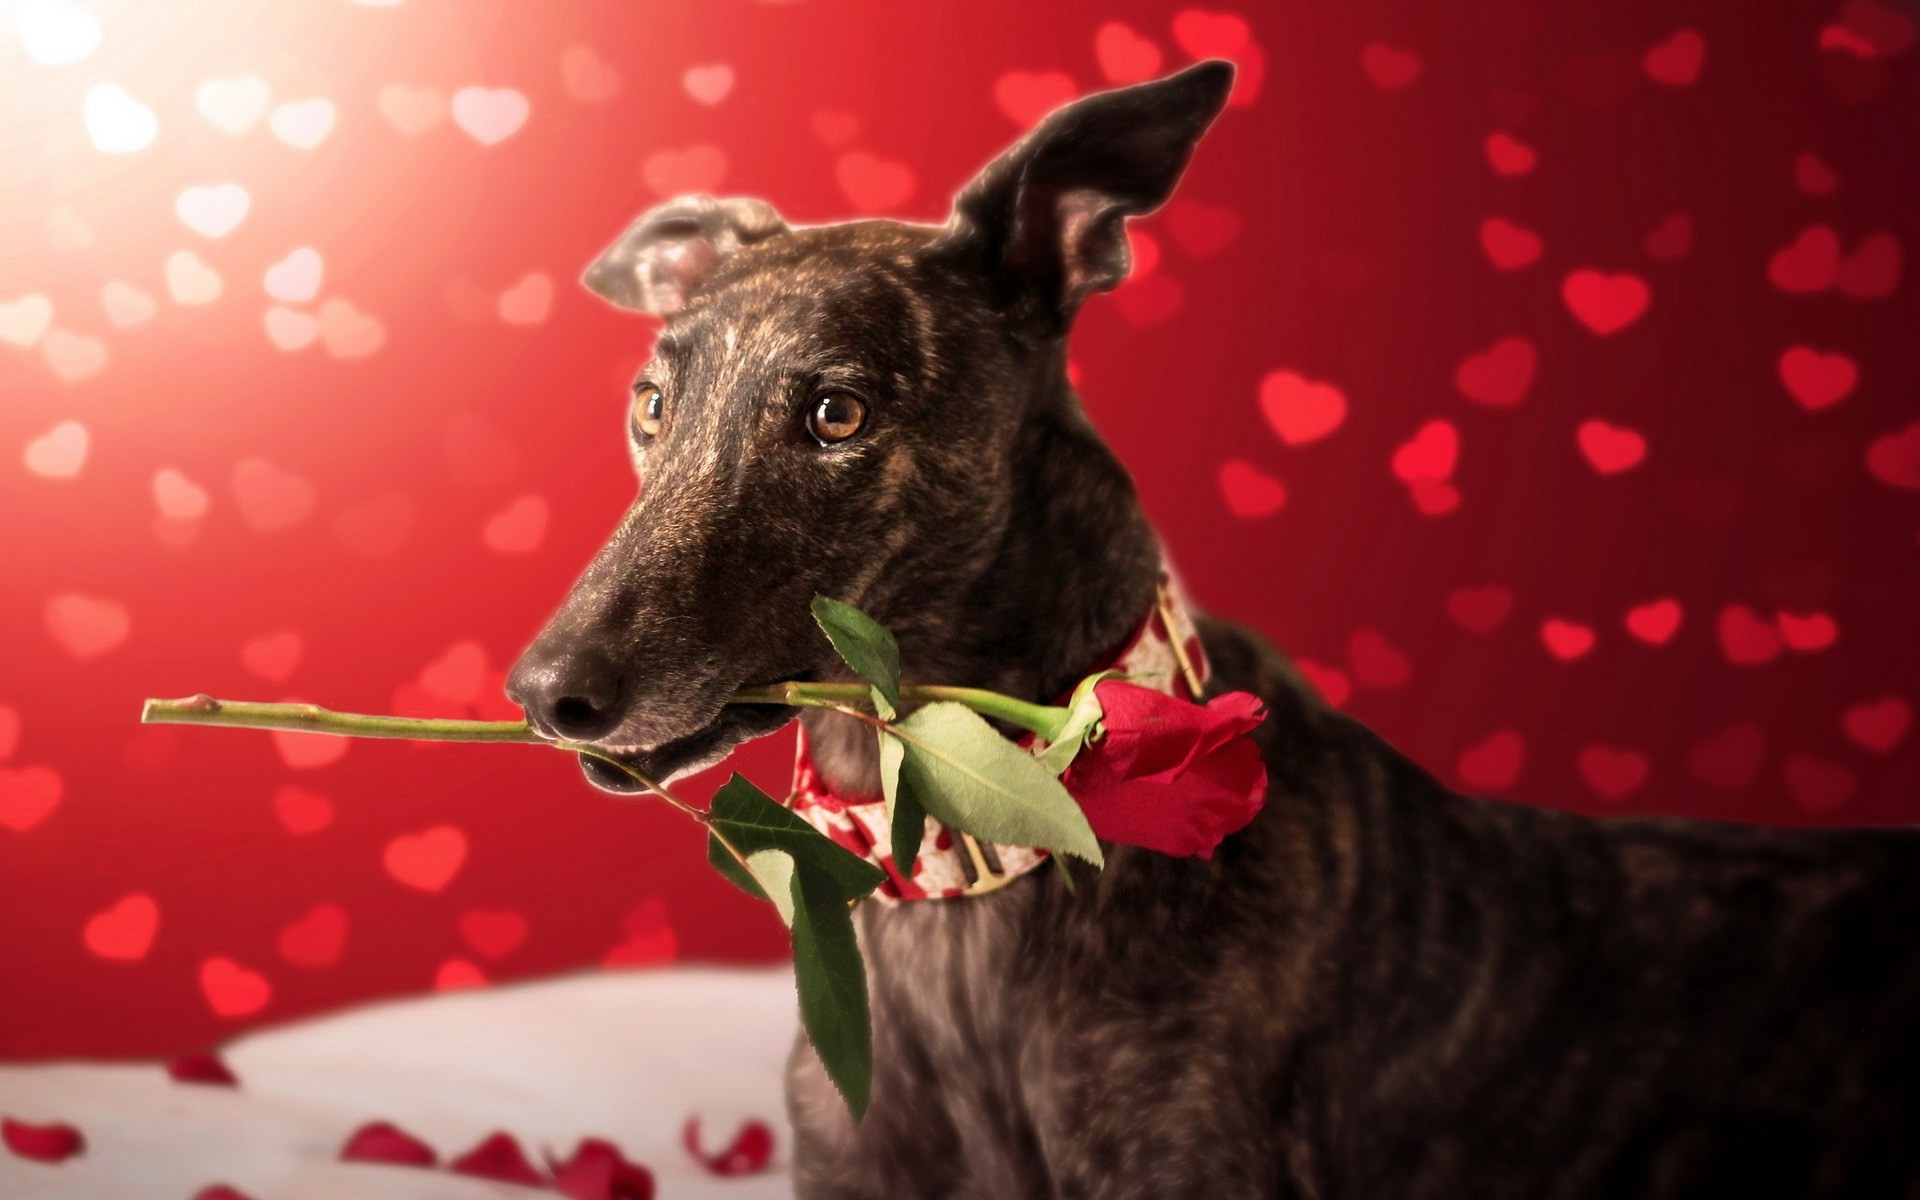 valentines-day-dog-with-red-rose-hearts-bokeh-